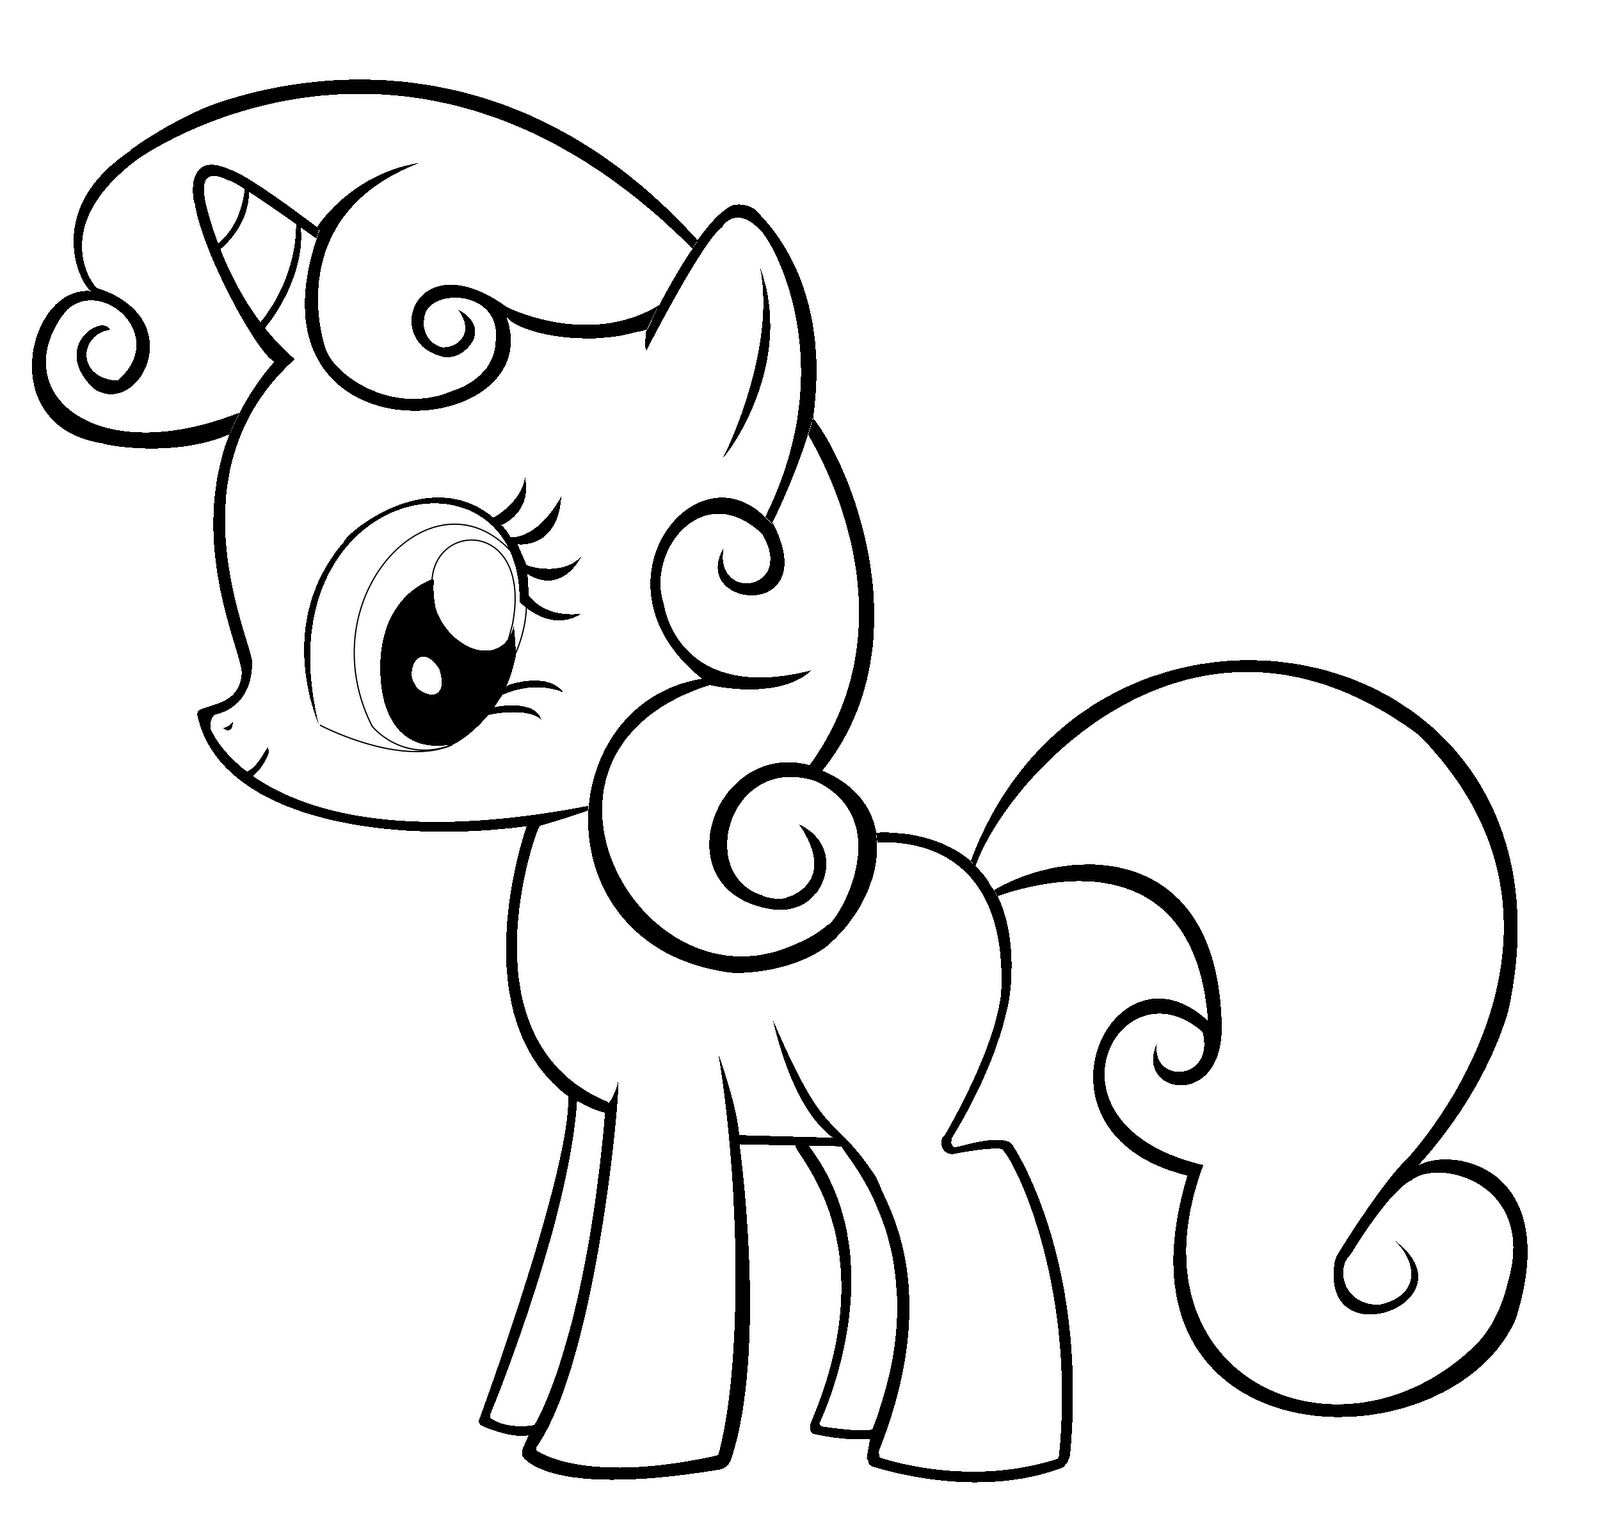 20 My Little Pony Coloring Pages Of 2017 Your Kid Will Love